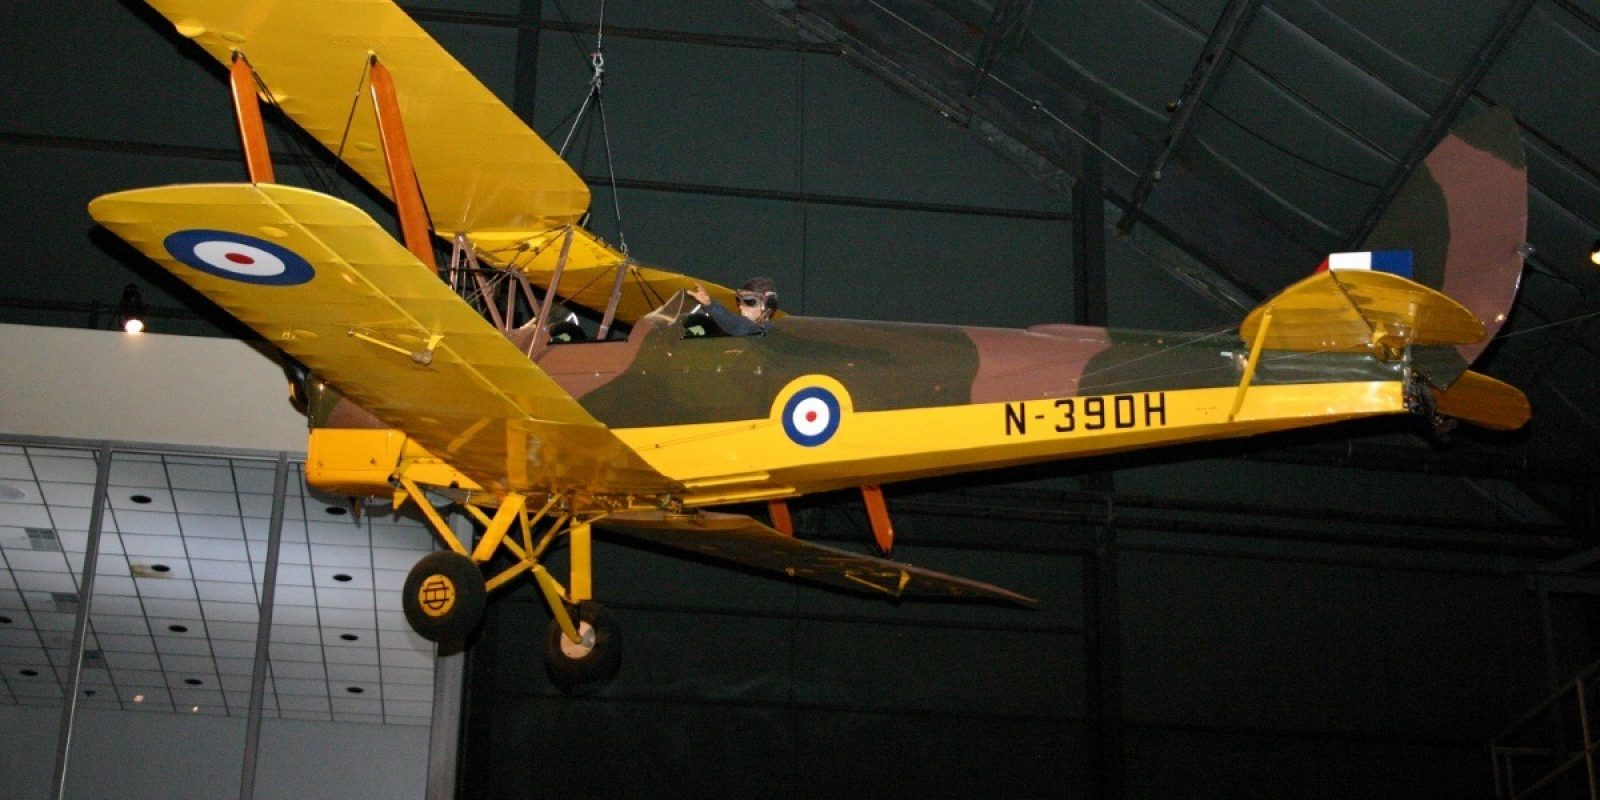 De Tiger Moth ex-OO-NCN in februari 2007 gefotografeerd in het National Museum of the U.S. Air Force. (Foto Guy Viselé)